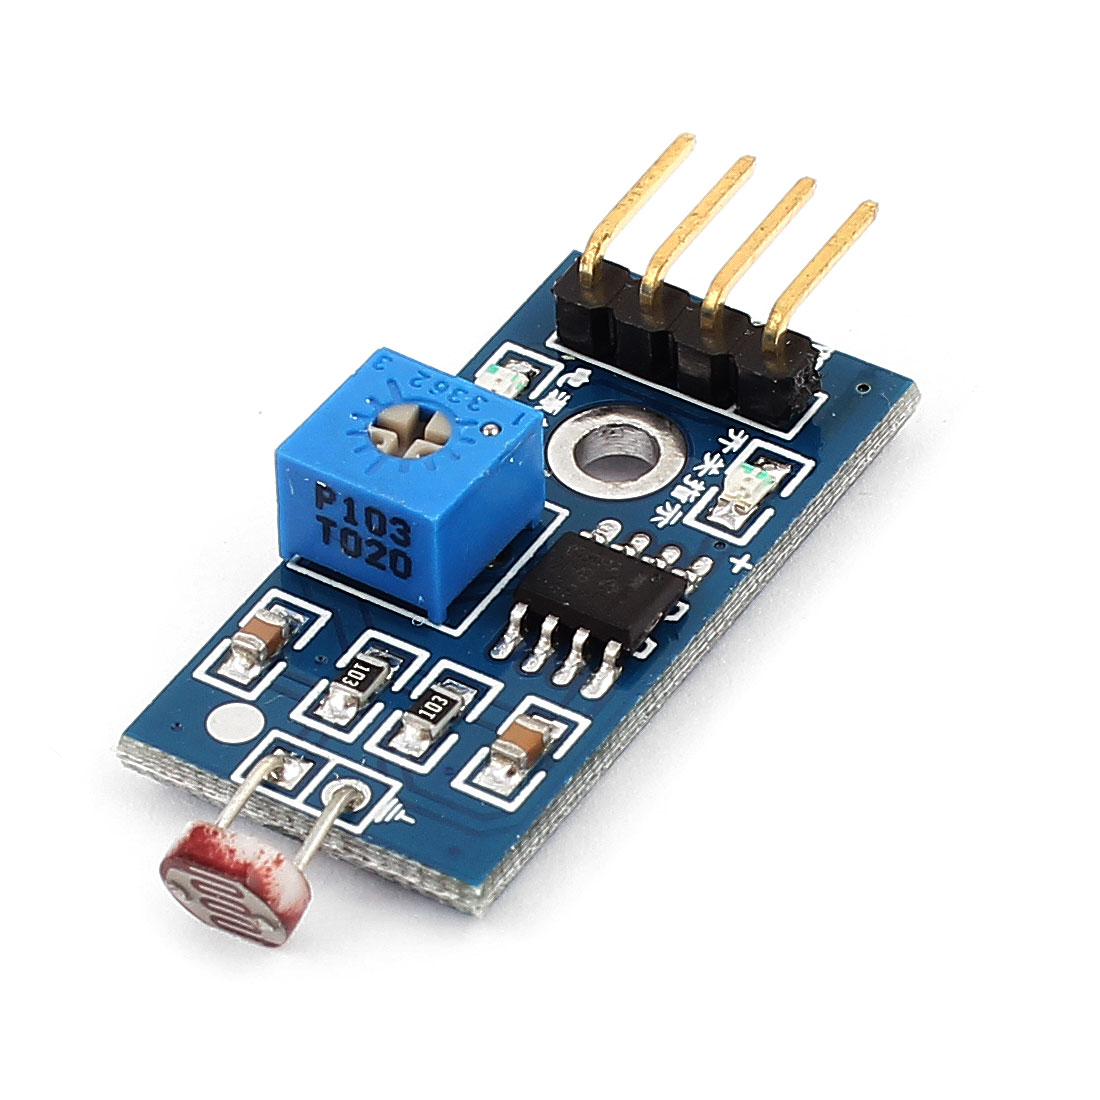 3.3-5V Photosensitive Resistance Sensor Light Detection Sensor Module